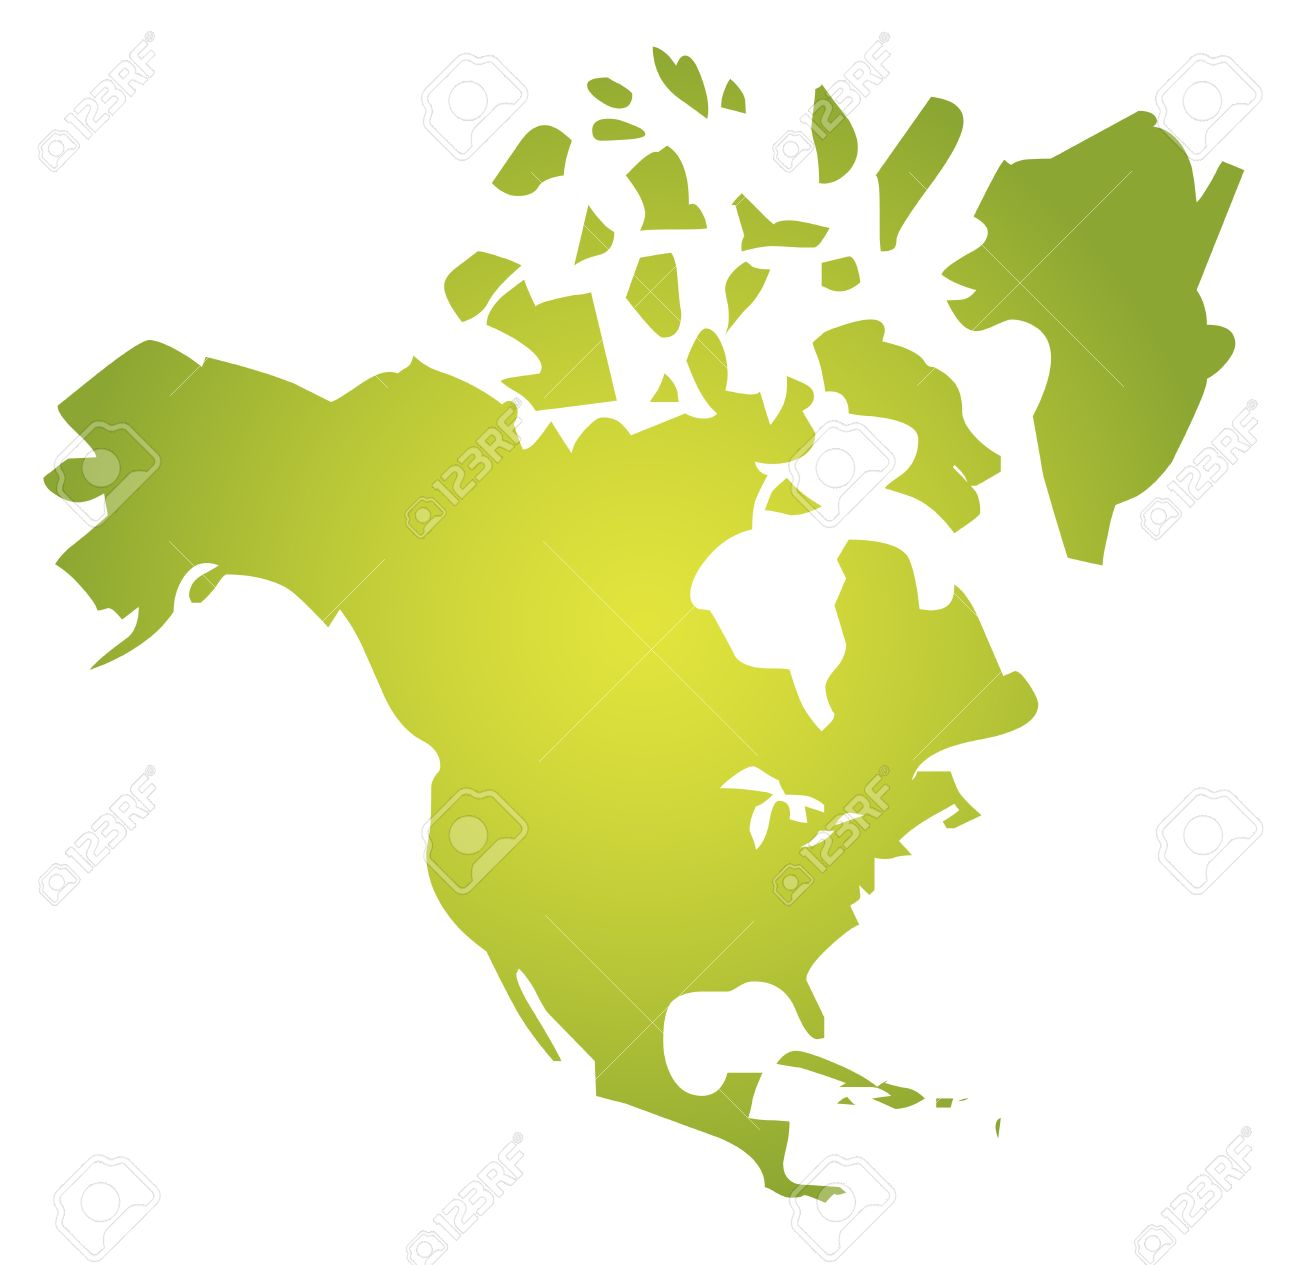 Map Of The North American Continent USA Canada Mexico Stock Photo